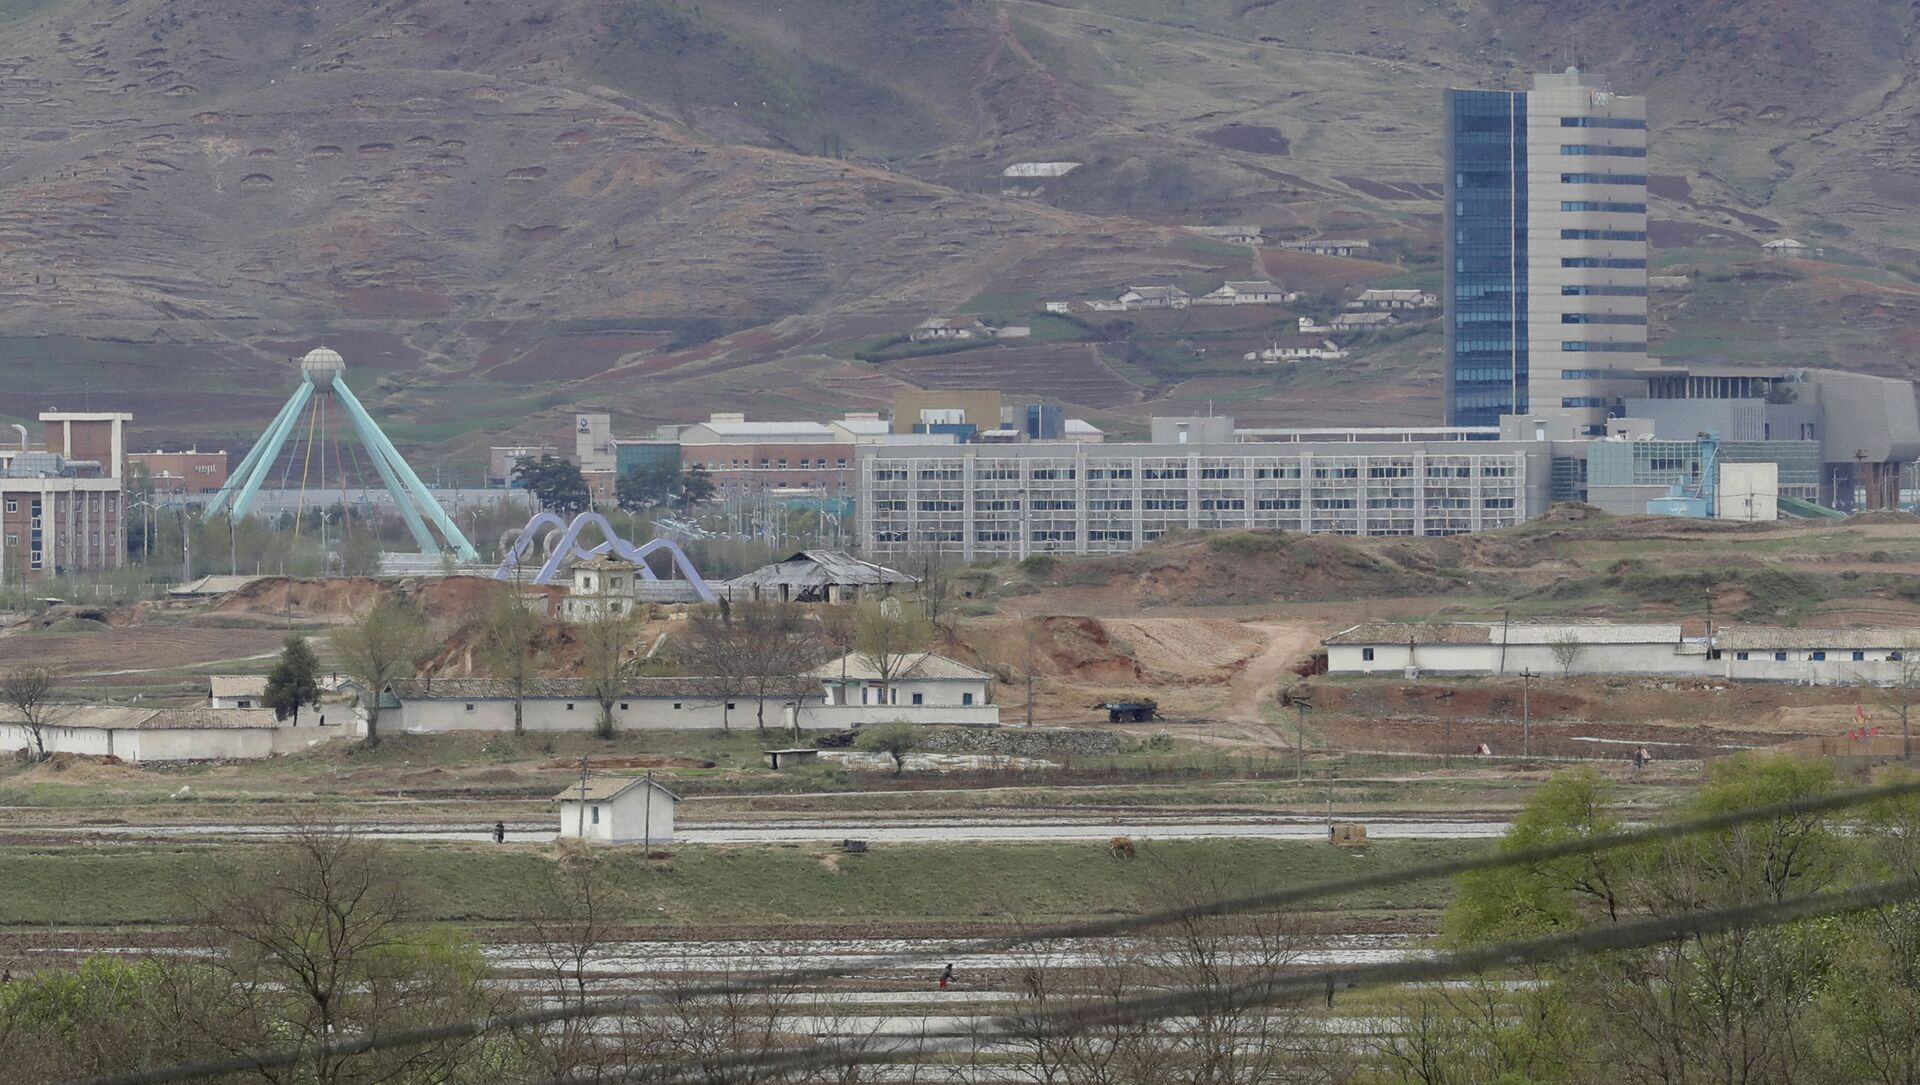 FILE - In this April 24, 2018, file photo, the Kaesong industrial complex in North Korea is seen from the Taesungdong freedom village inside the demilitarized zone during a press tour in Paju, South Korea - Sputnik International, 1920, 03.08.2021